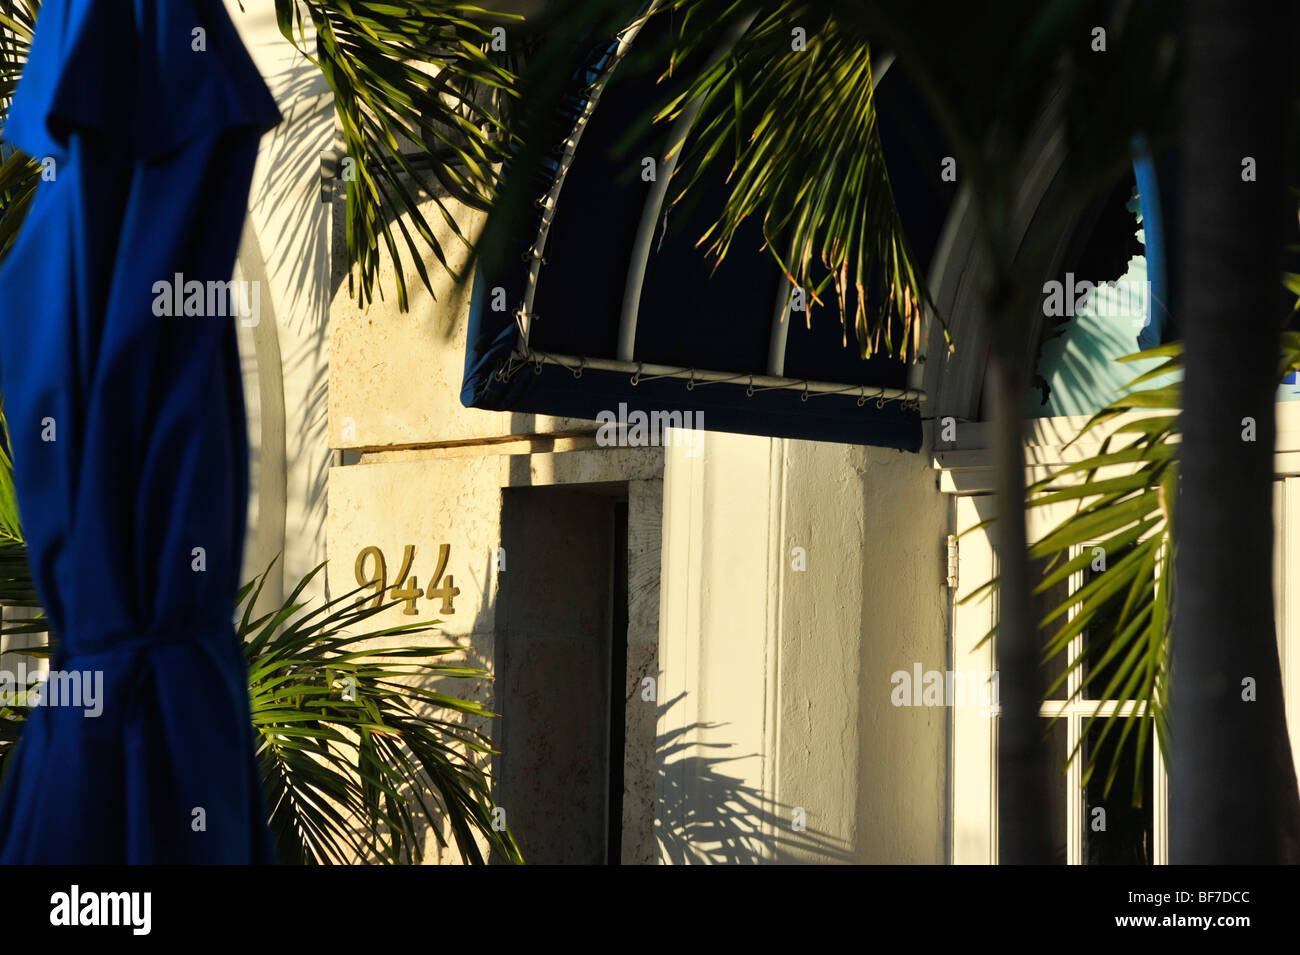 Blue Moon Hotel South Beach Miami Banque D'Images